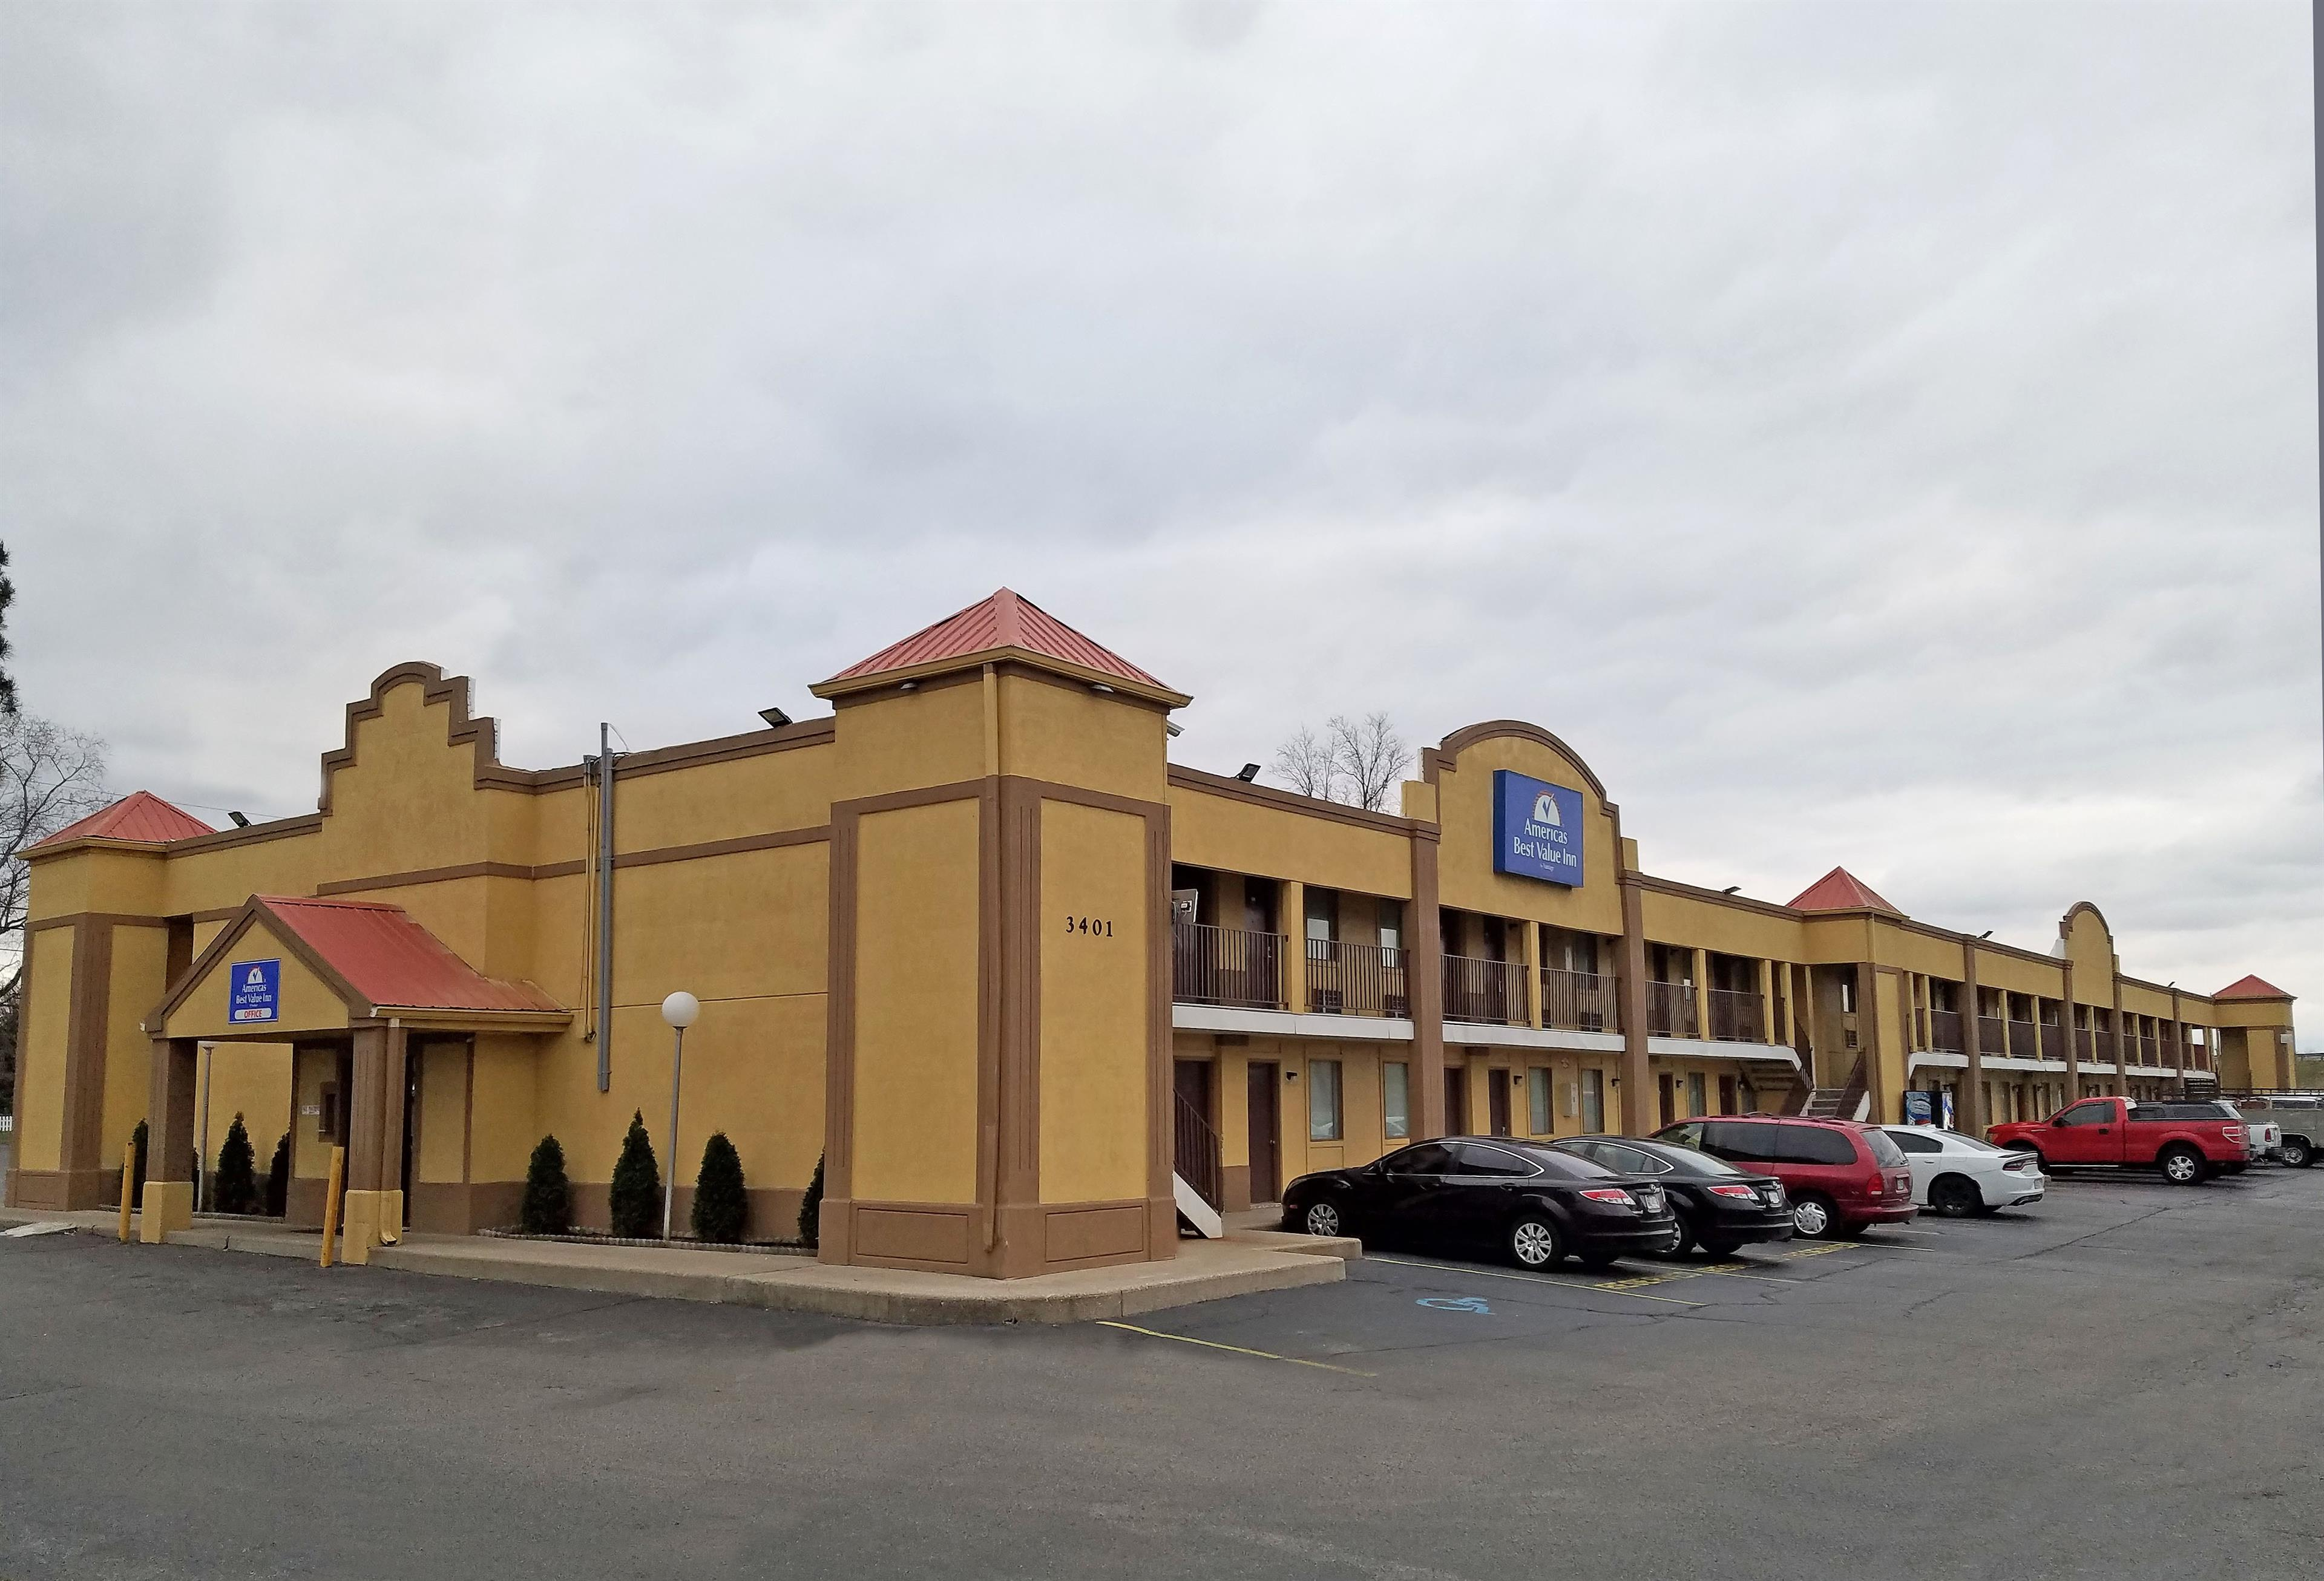 Americas best value inn indy south coupons near me in for Americas best coupons